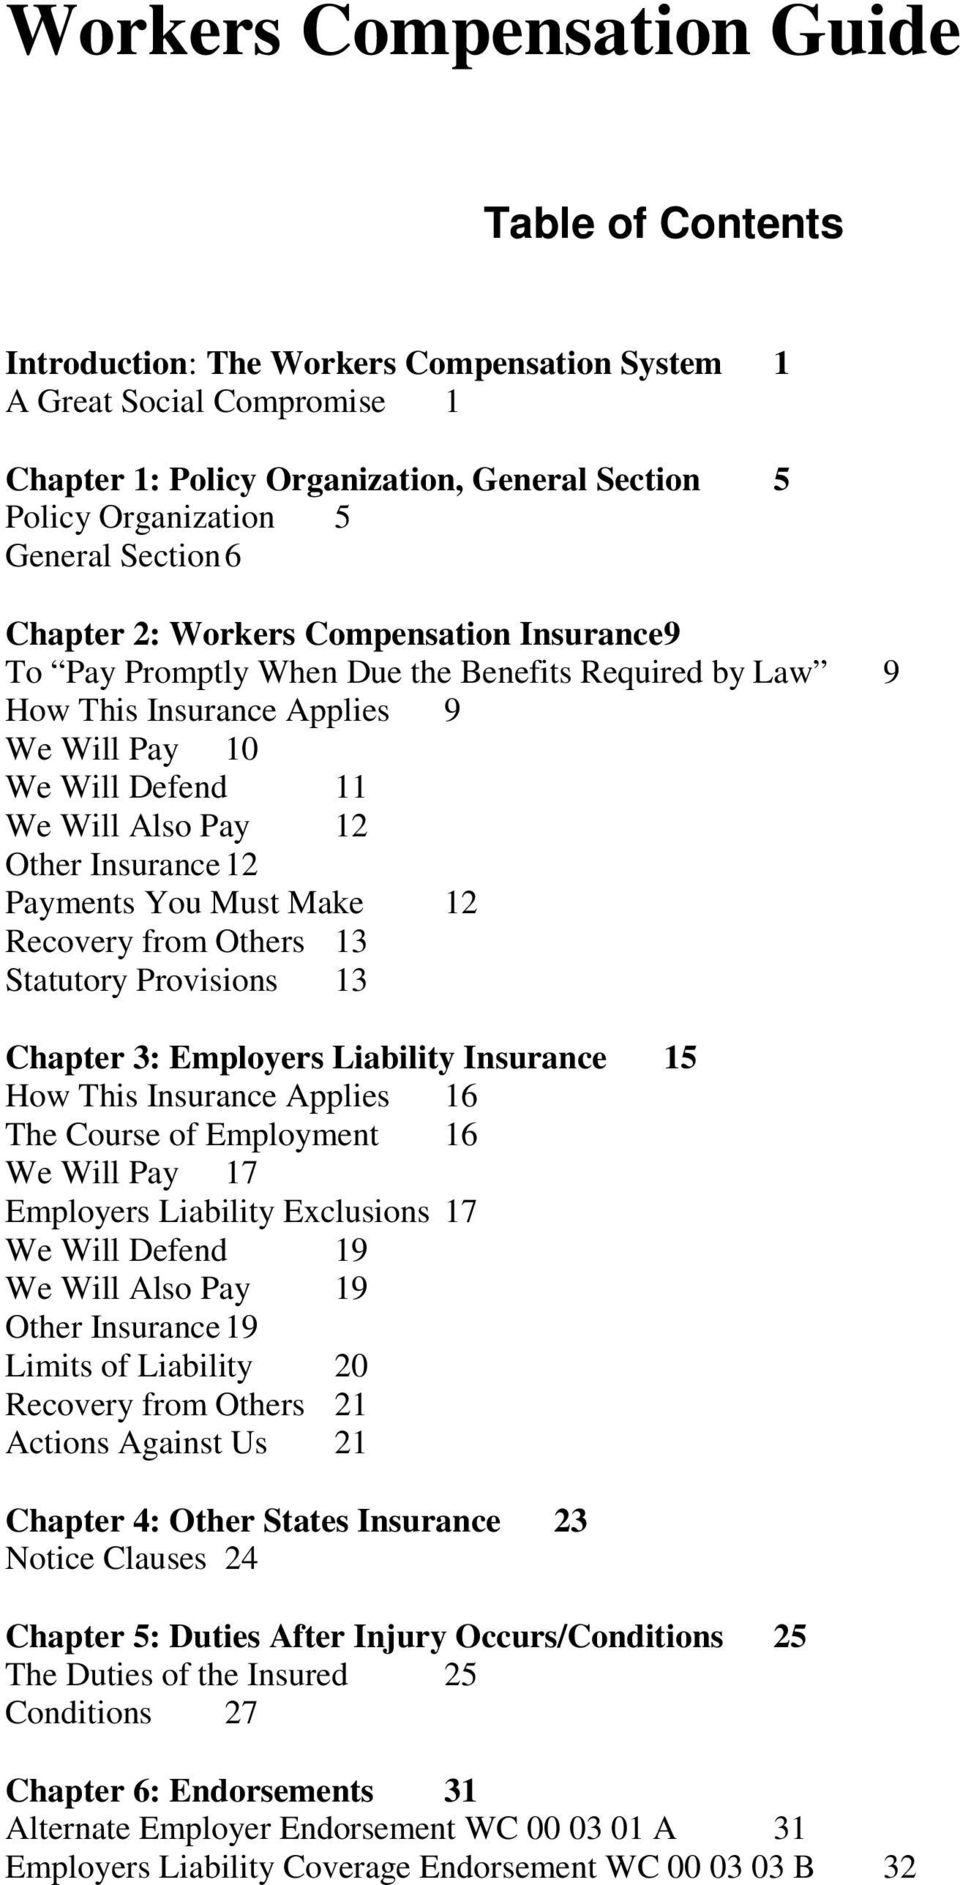 Other Insurance 12 Payments You Must Make 12 Recovery from Others 13 Statutory Provisions 13 Chapter 3: Employers Liability Insurance 15 How This Insurance Applies 16 The Course of Employment 16 We